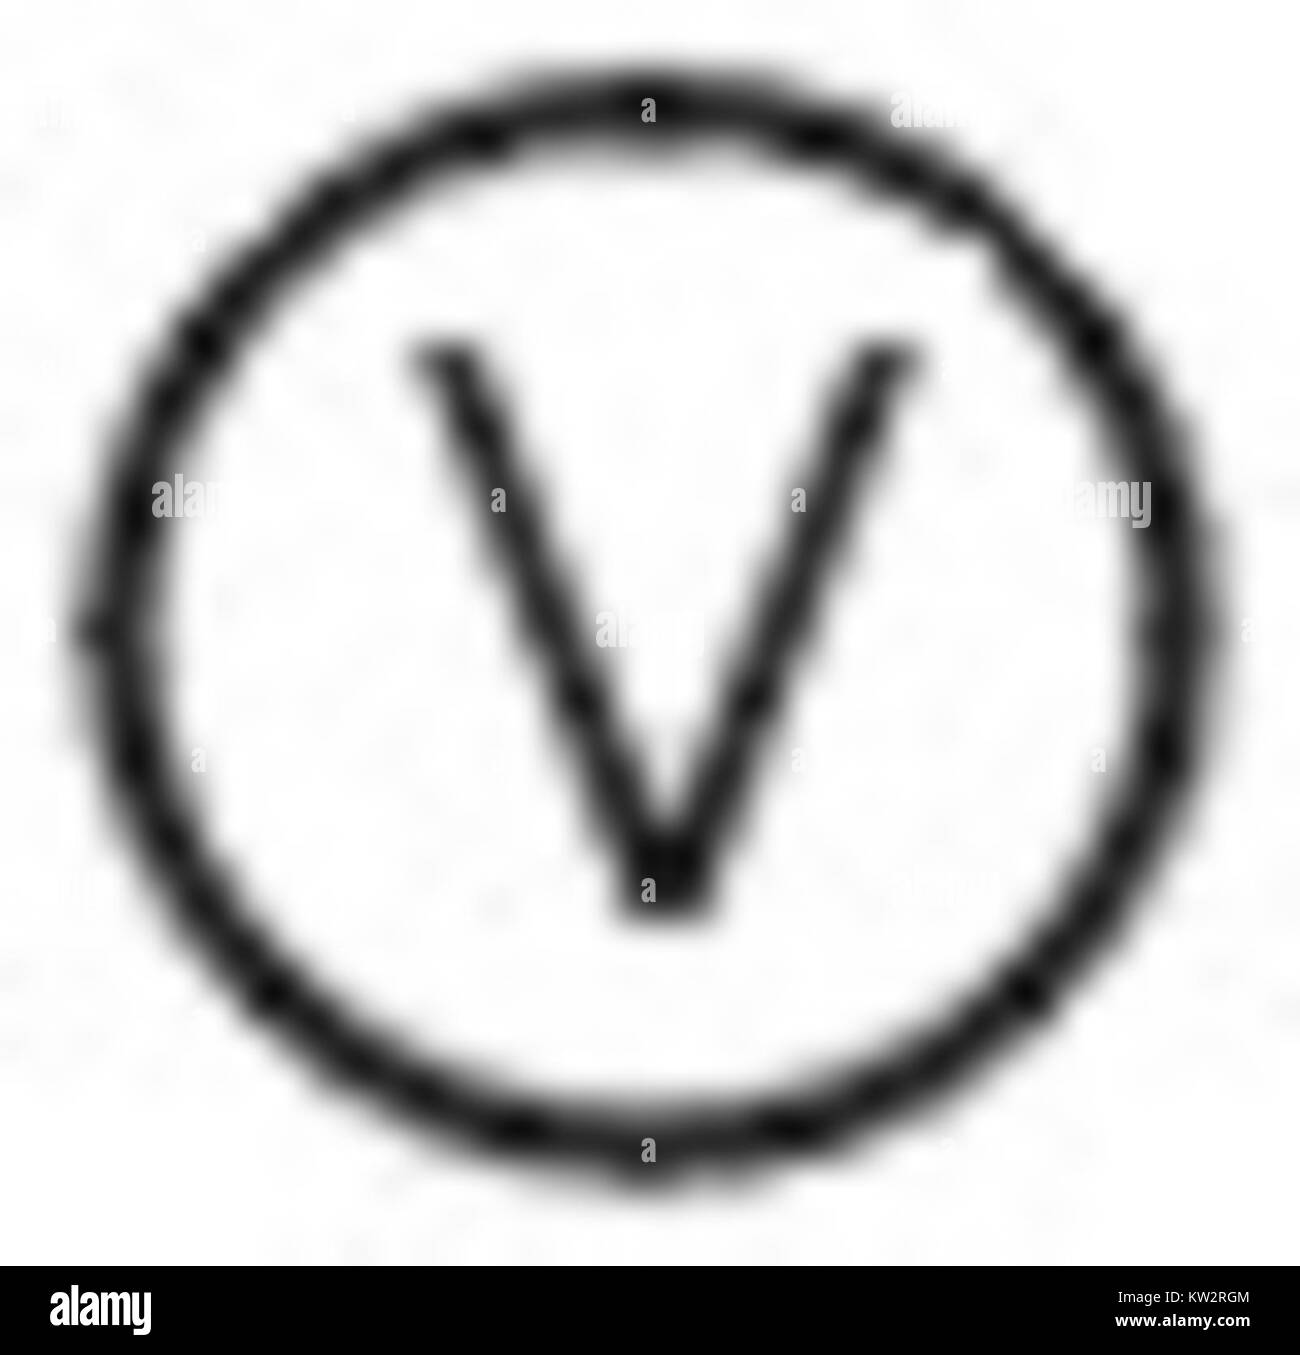 Voltmeter Black and White Stock Photos & Images - Alamy